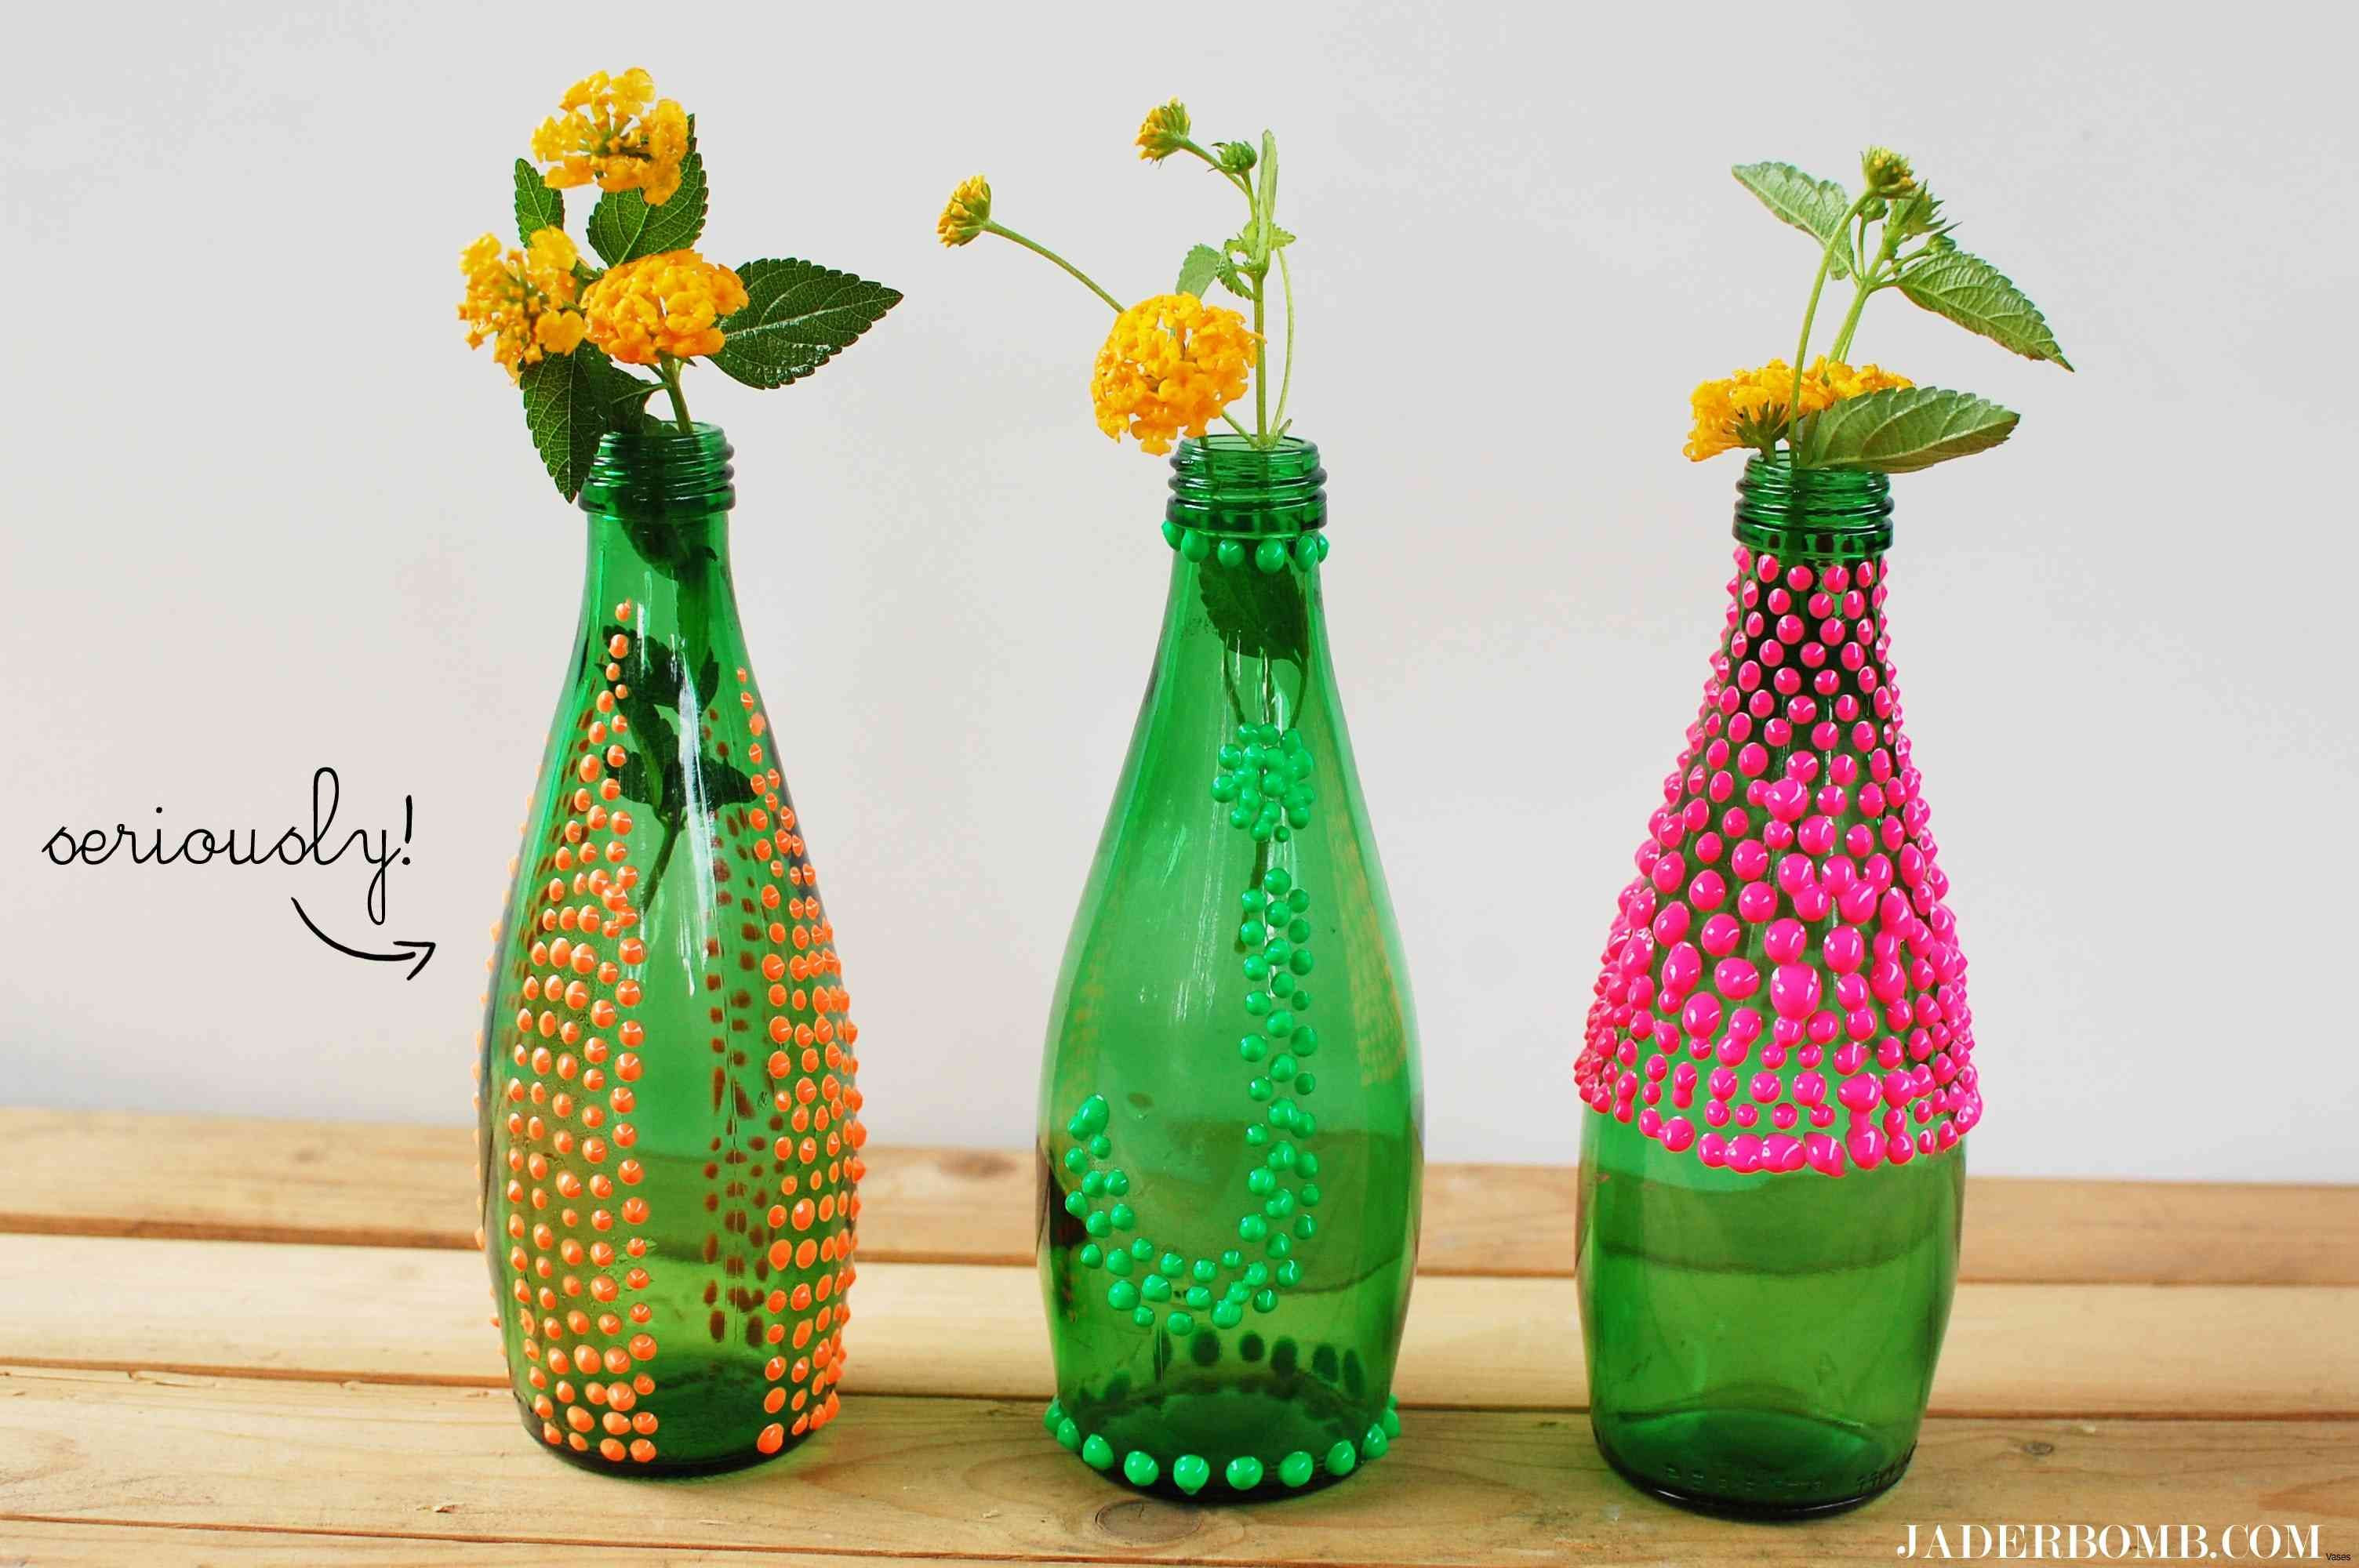 mexican glass vases of pottery barn glass vase new can paint fresh h vases paint vase i 0d with pottery barn glass vase new can paint fresh h vases paint vase i 0d with glue